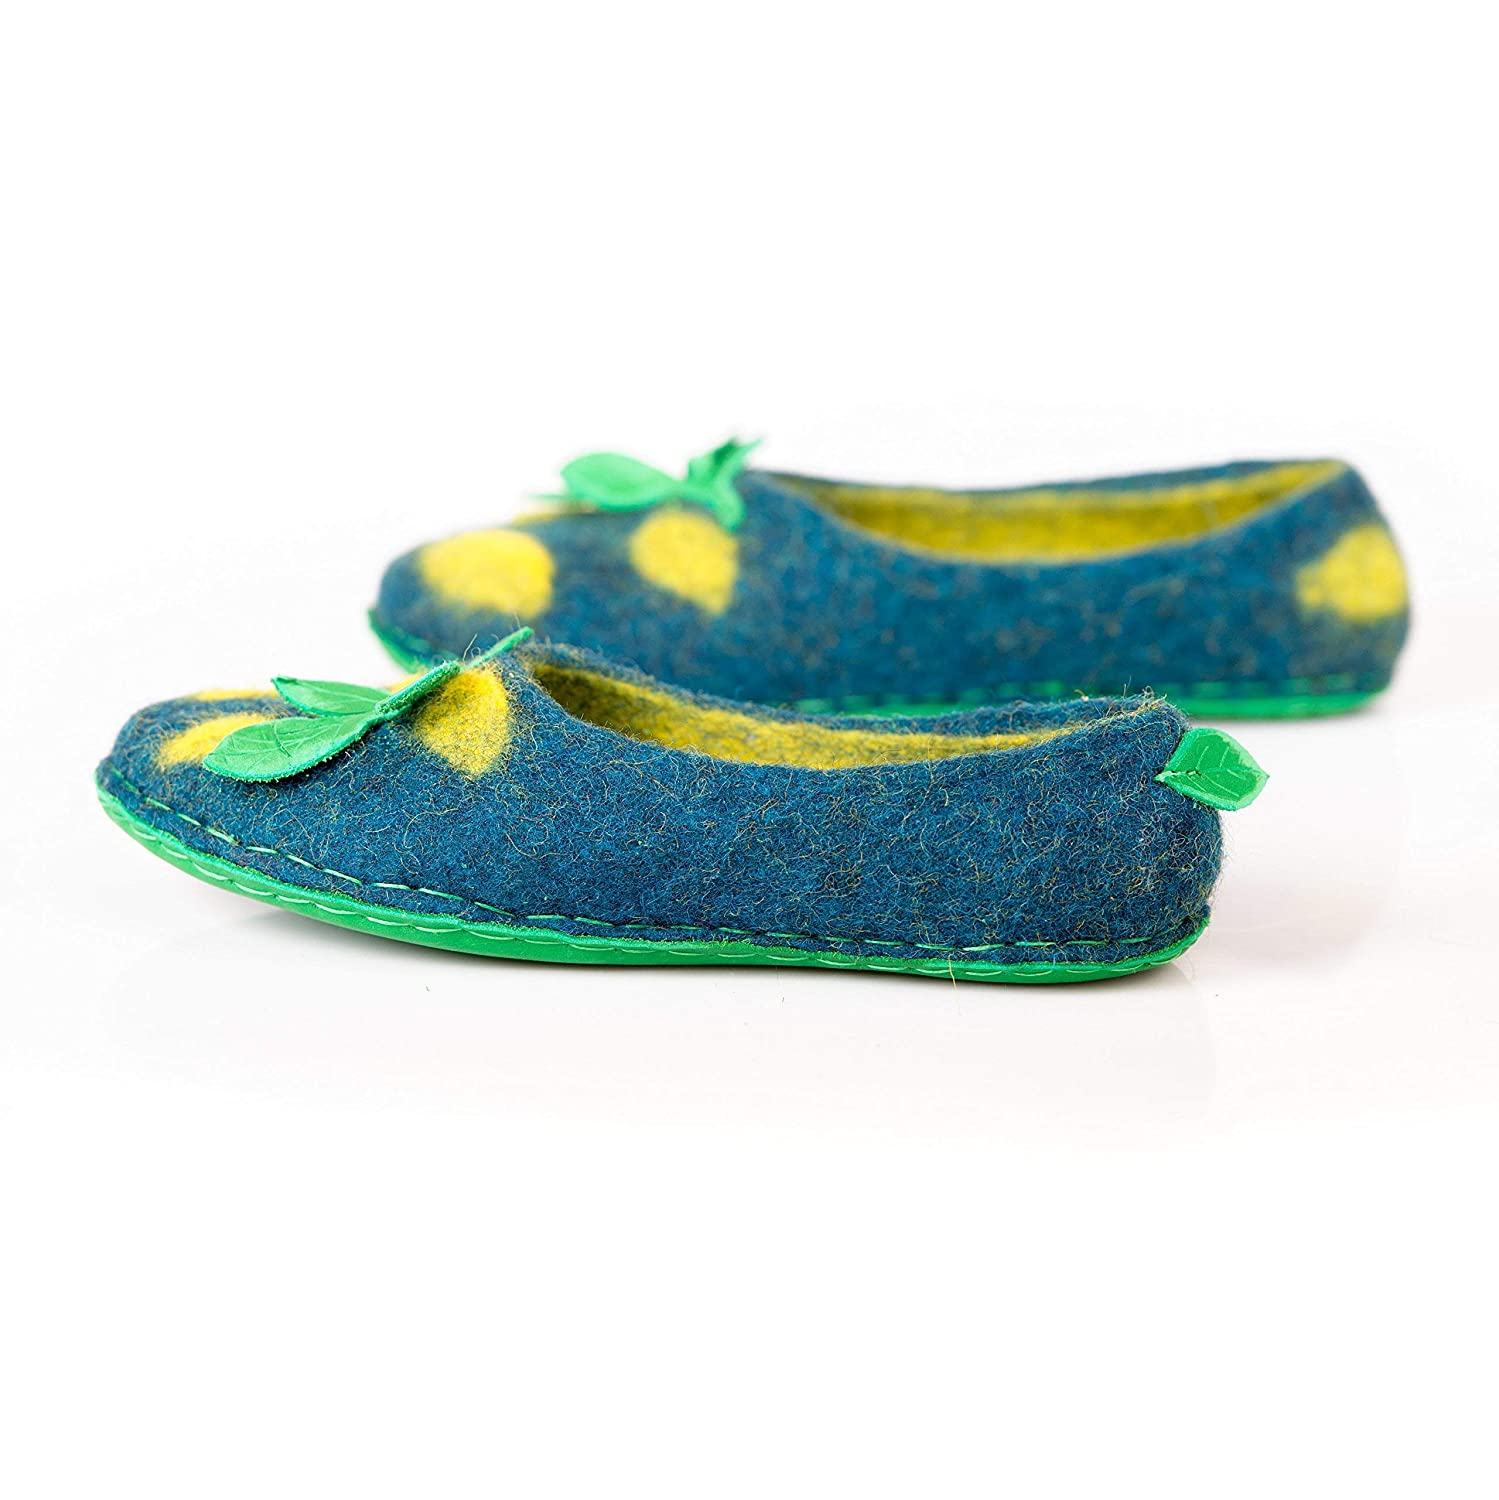 BureBure Lemon Felted Wool Slippers for Women Natural Handmade in Europe